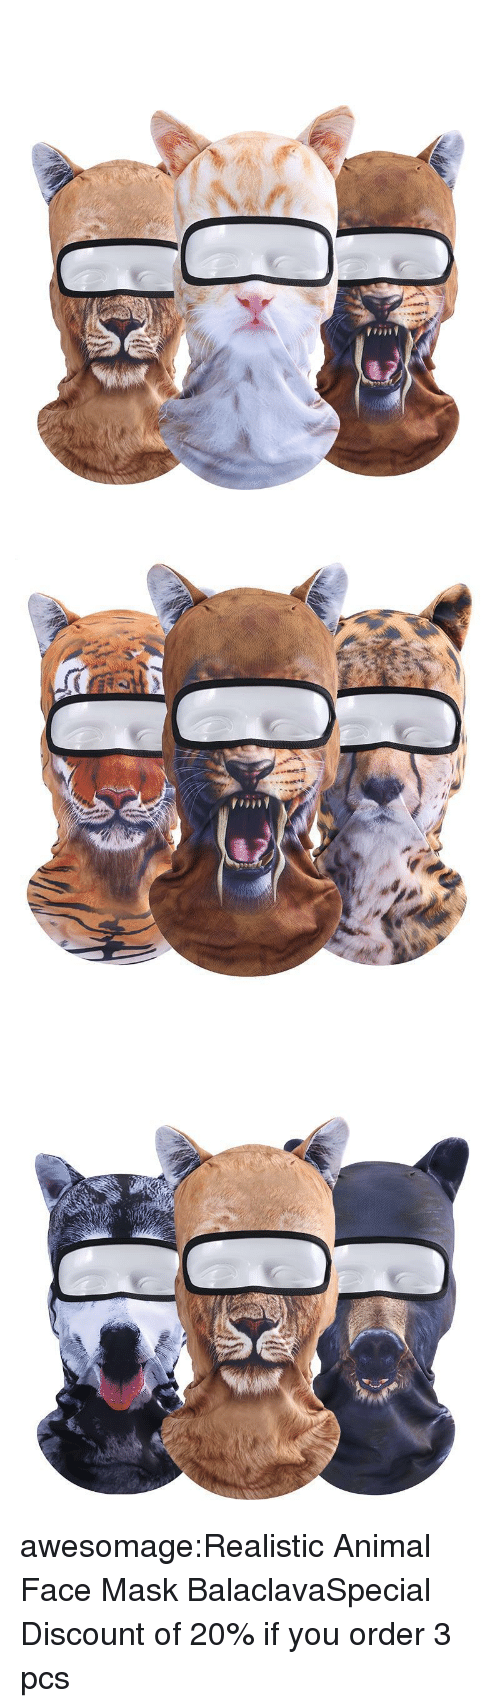 Cycling: awesomage:Realistic Animal Face Mask BalaclavaSpecial Discount of 20% if you order 3 pcs